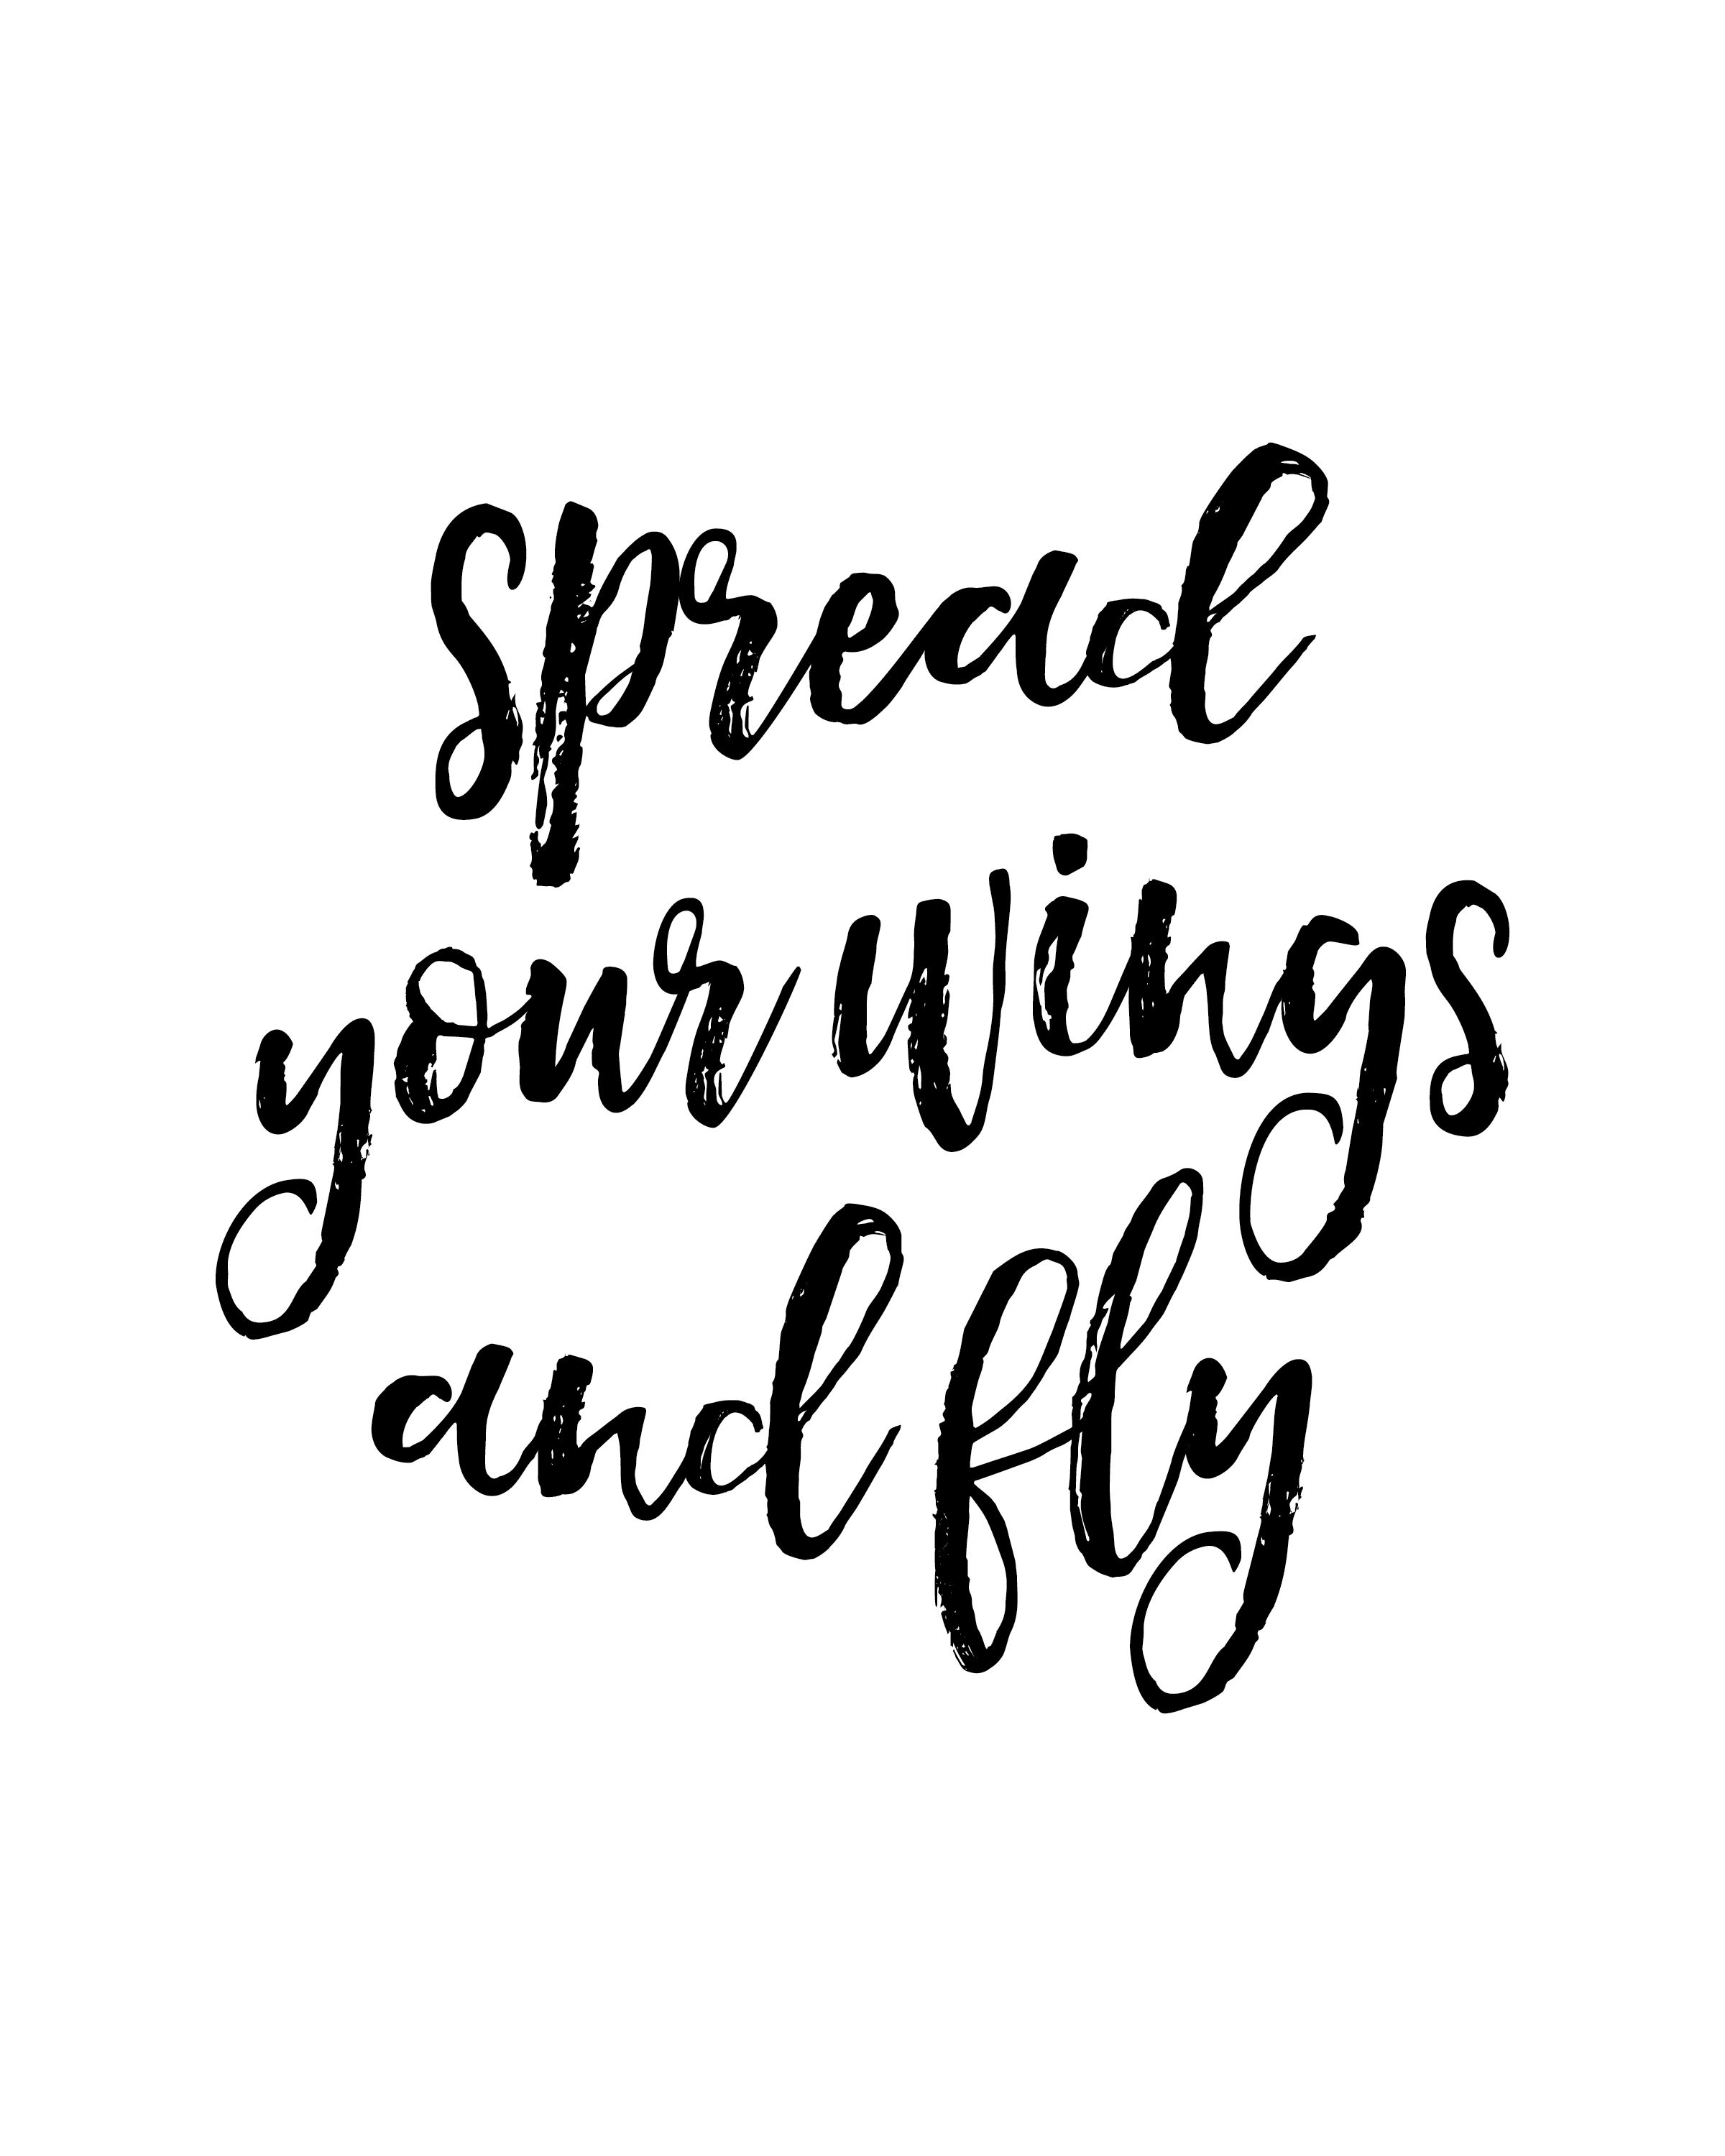 quot spread your wings and fly quot printable wall art quote typography poster motivational